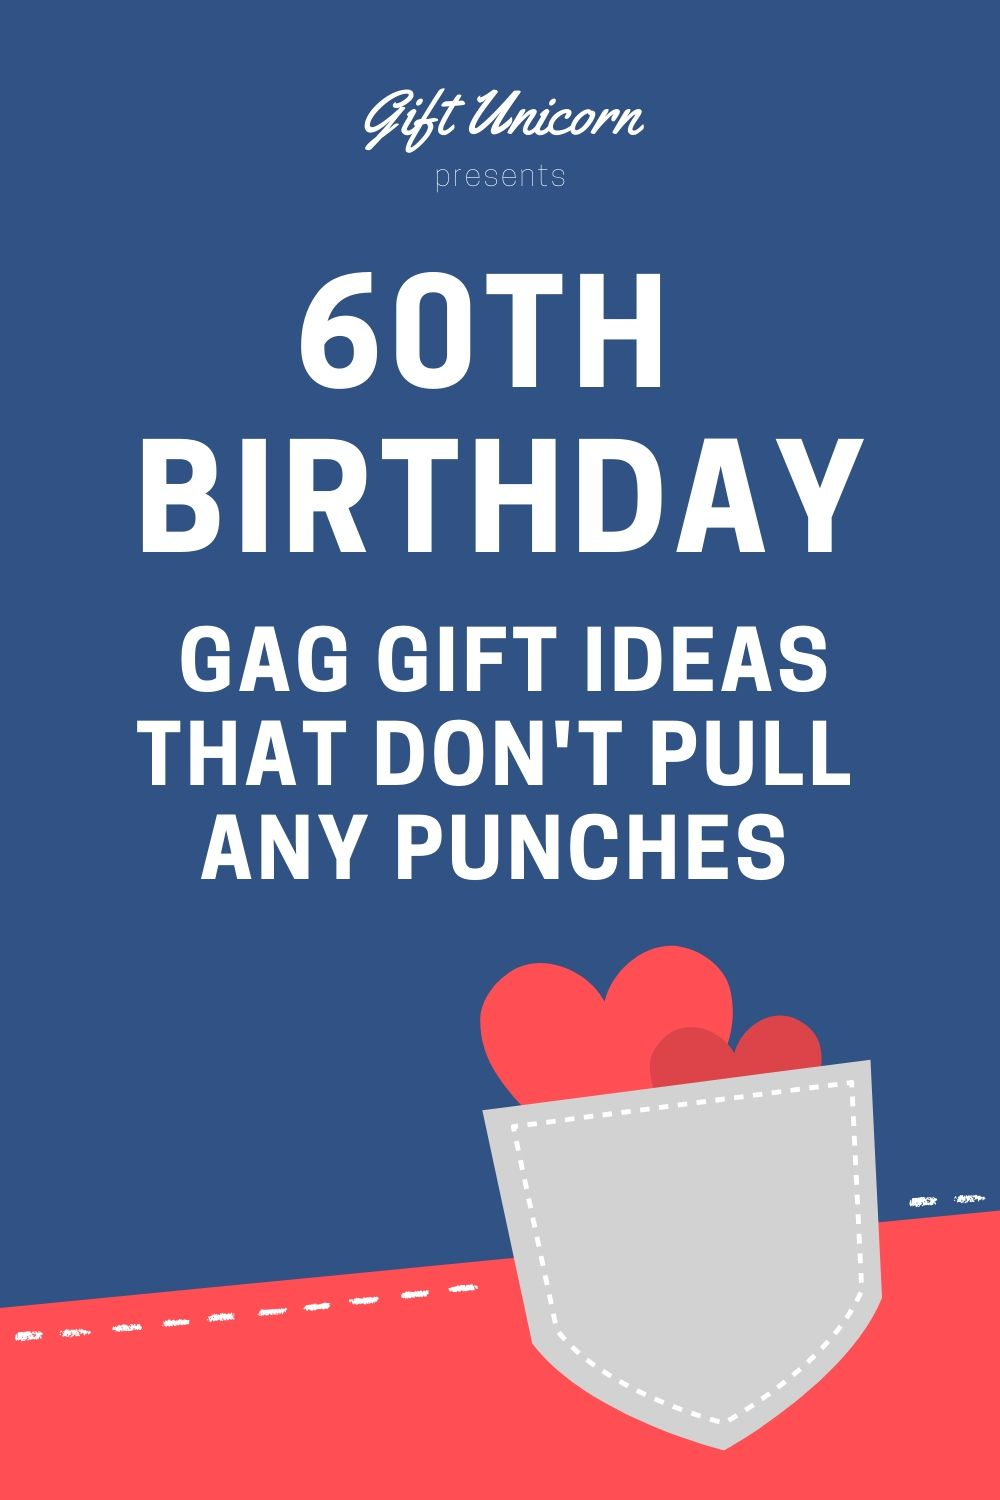 60th birthday gag gift ideas pin image